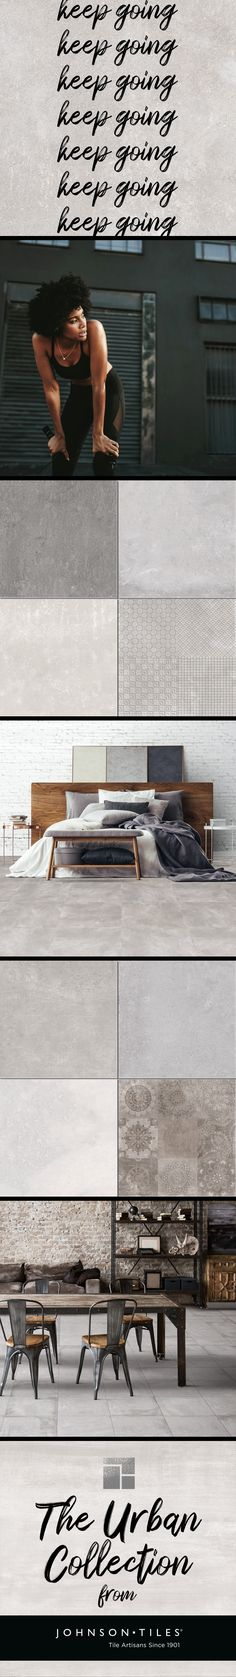 We are the leading manufacturers of glazed ceramic wall and floor tiles. Our tiles are designed to withstand wear and tear. Johnson Tiles, Wall And Floor Tiles, Glazed Ceramic, Goals, Urban, Explore, City, Building, Collection